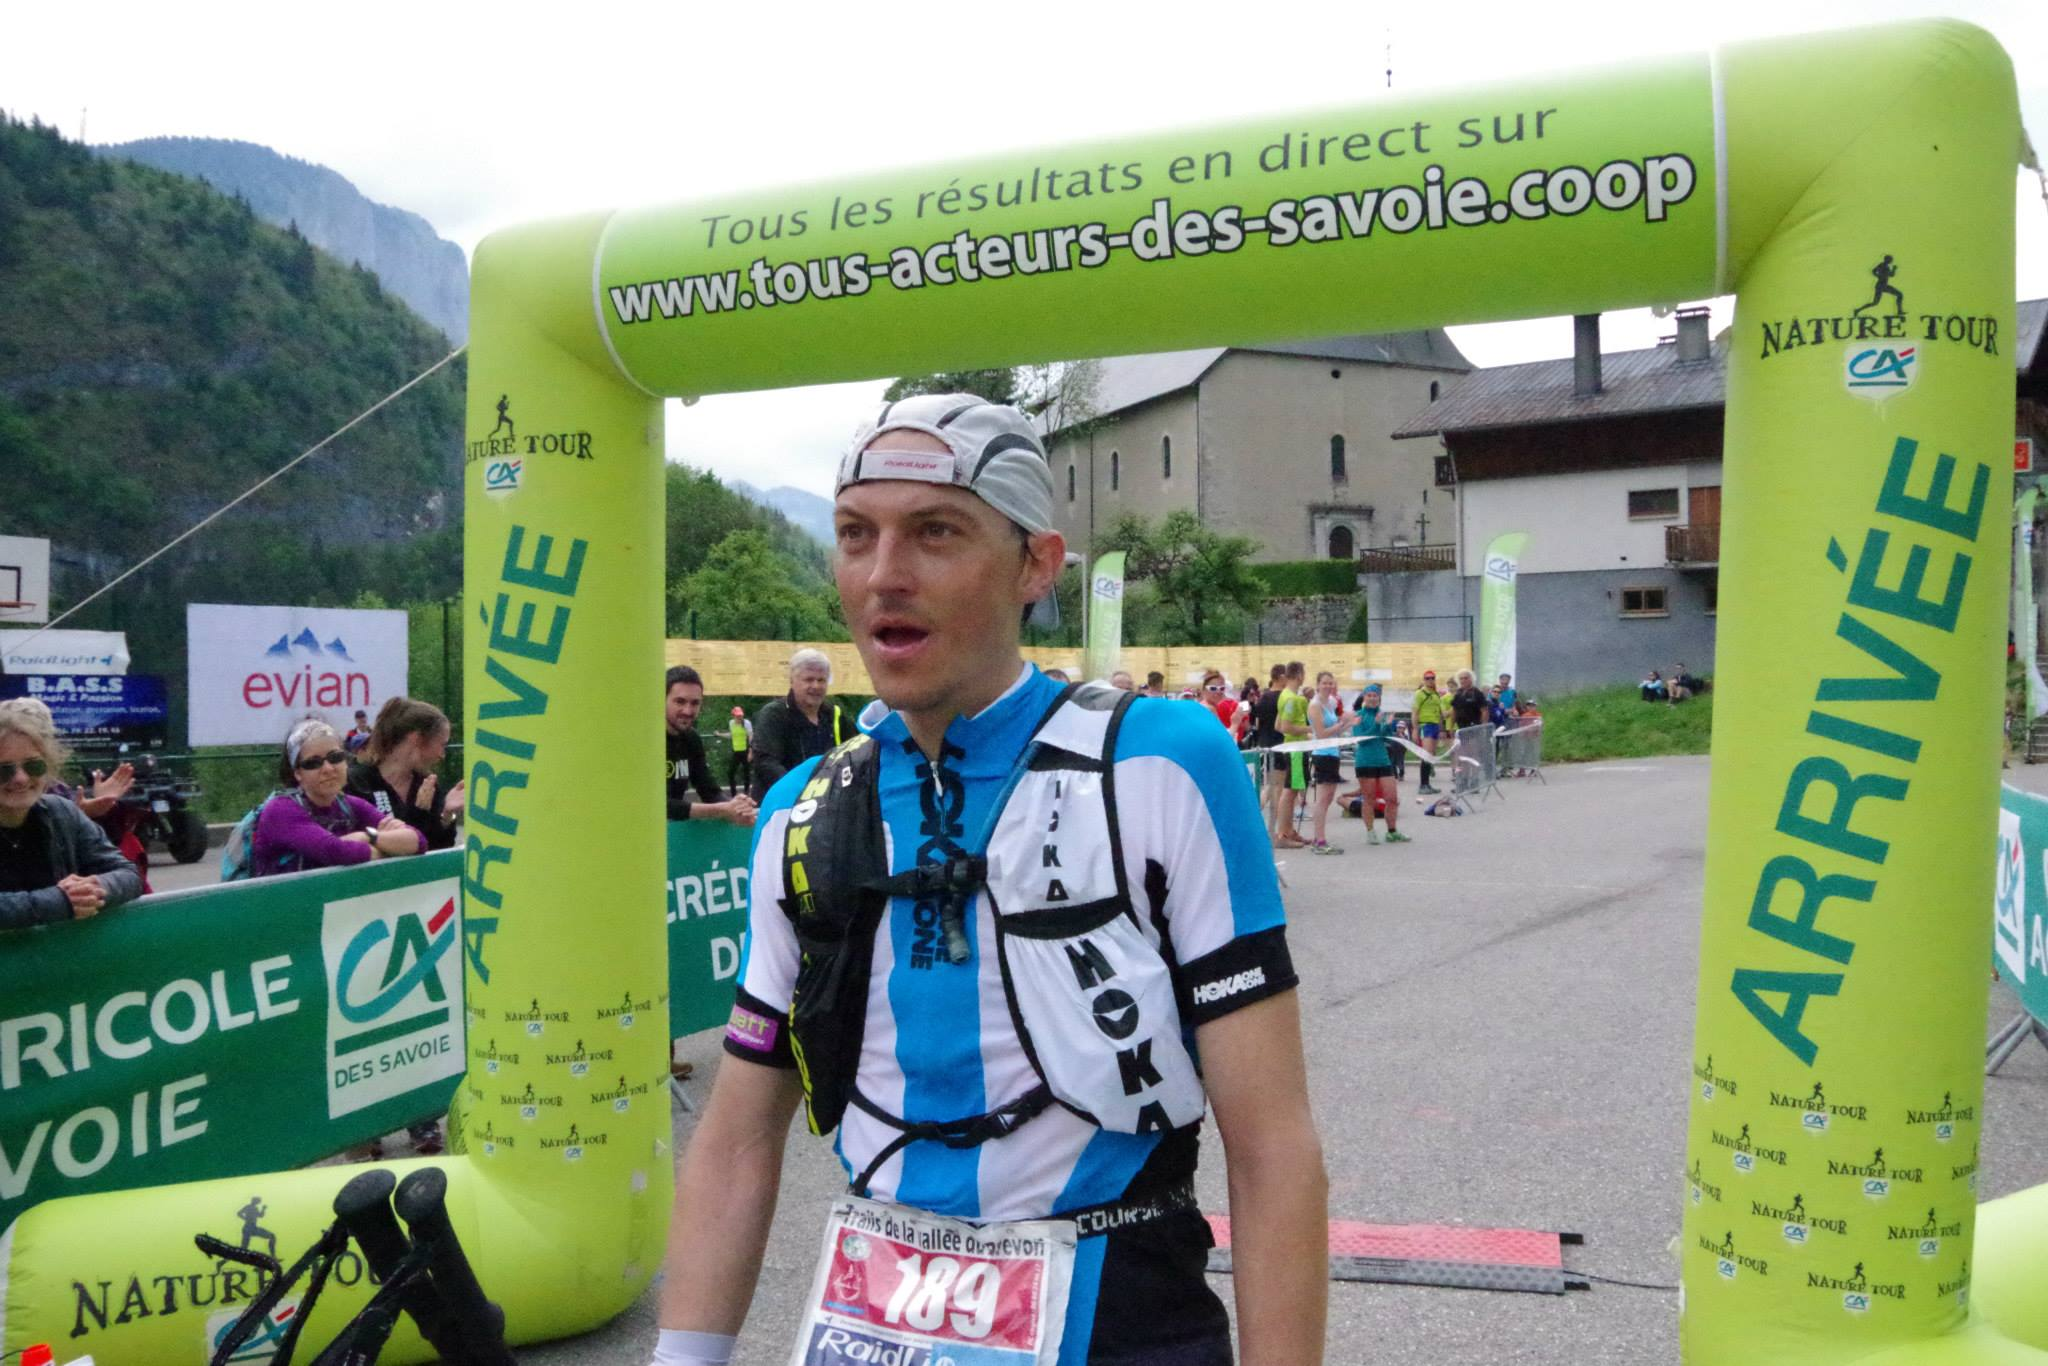 11059288 10153893291592782 2435742842956967997 o 1 - RESULTATS, COMMENTAIRES, PHOTOS ET VIDEO DES TRAILS DE LA VALLEE DU BREVON / 24-05-15